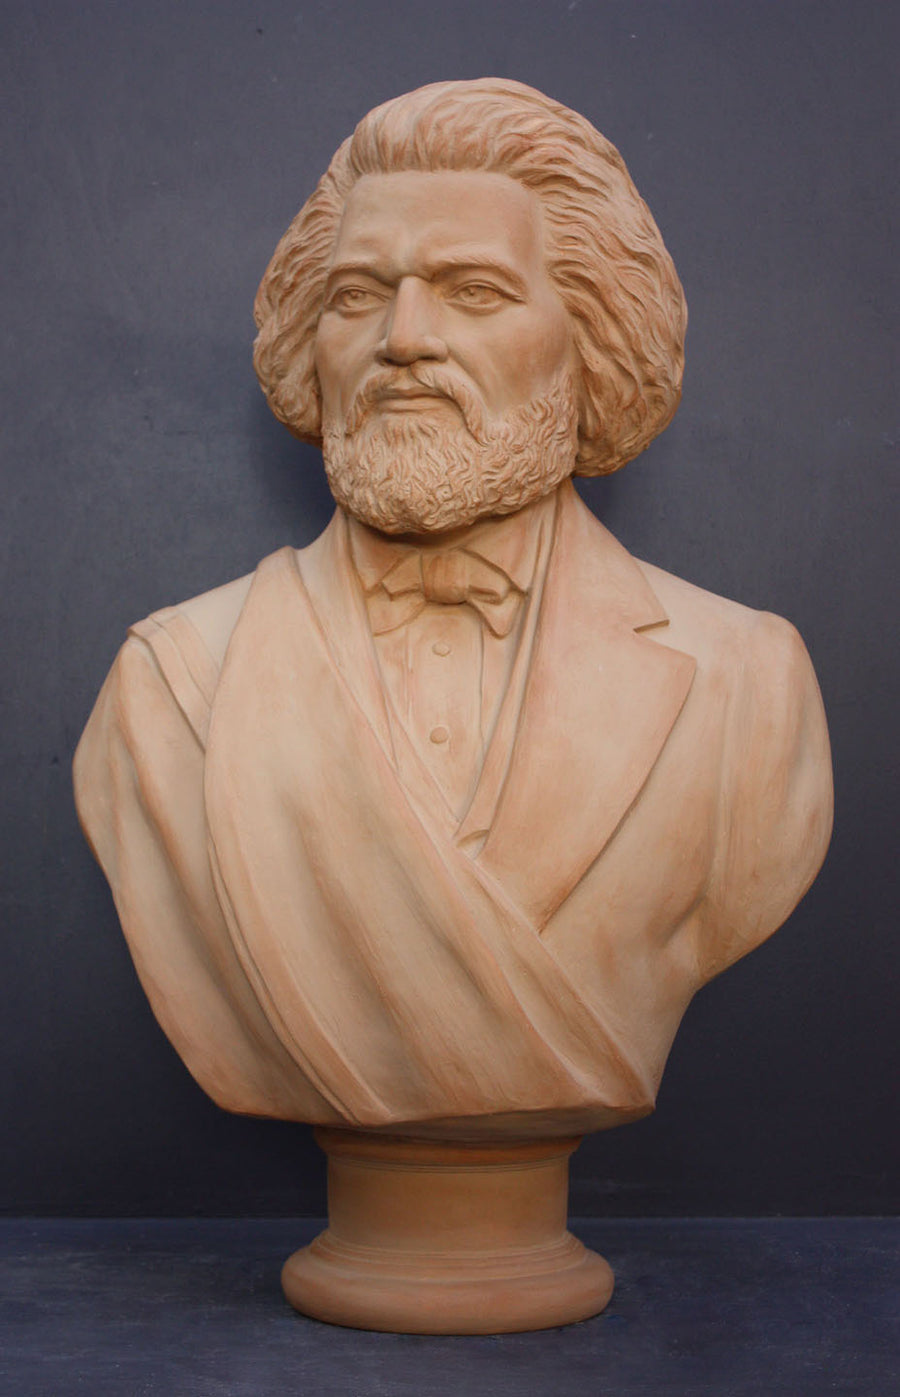 photo of terracotta-colored plaster cast sculpture of bust of Frederick Douglass with beard and in suit coat with toga over one shoulder on dark gray background